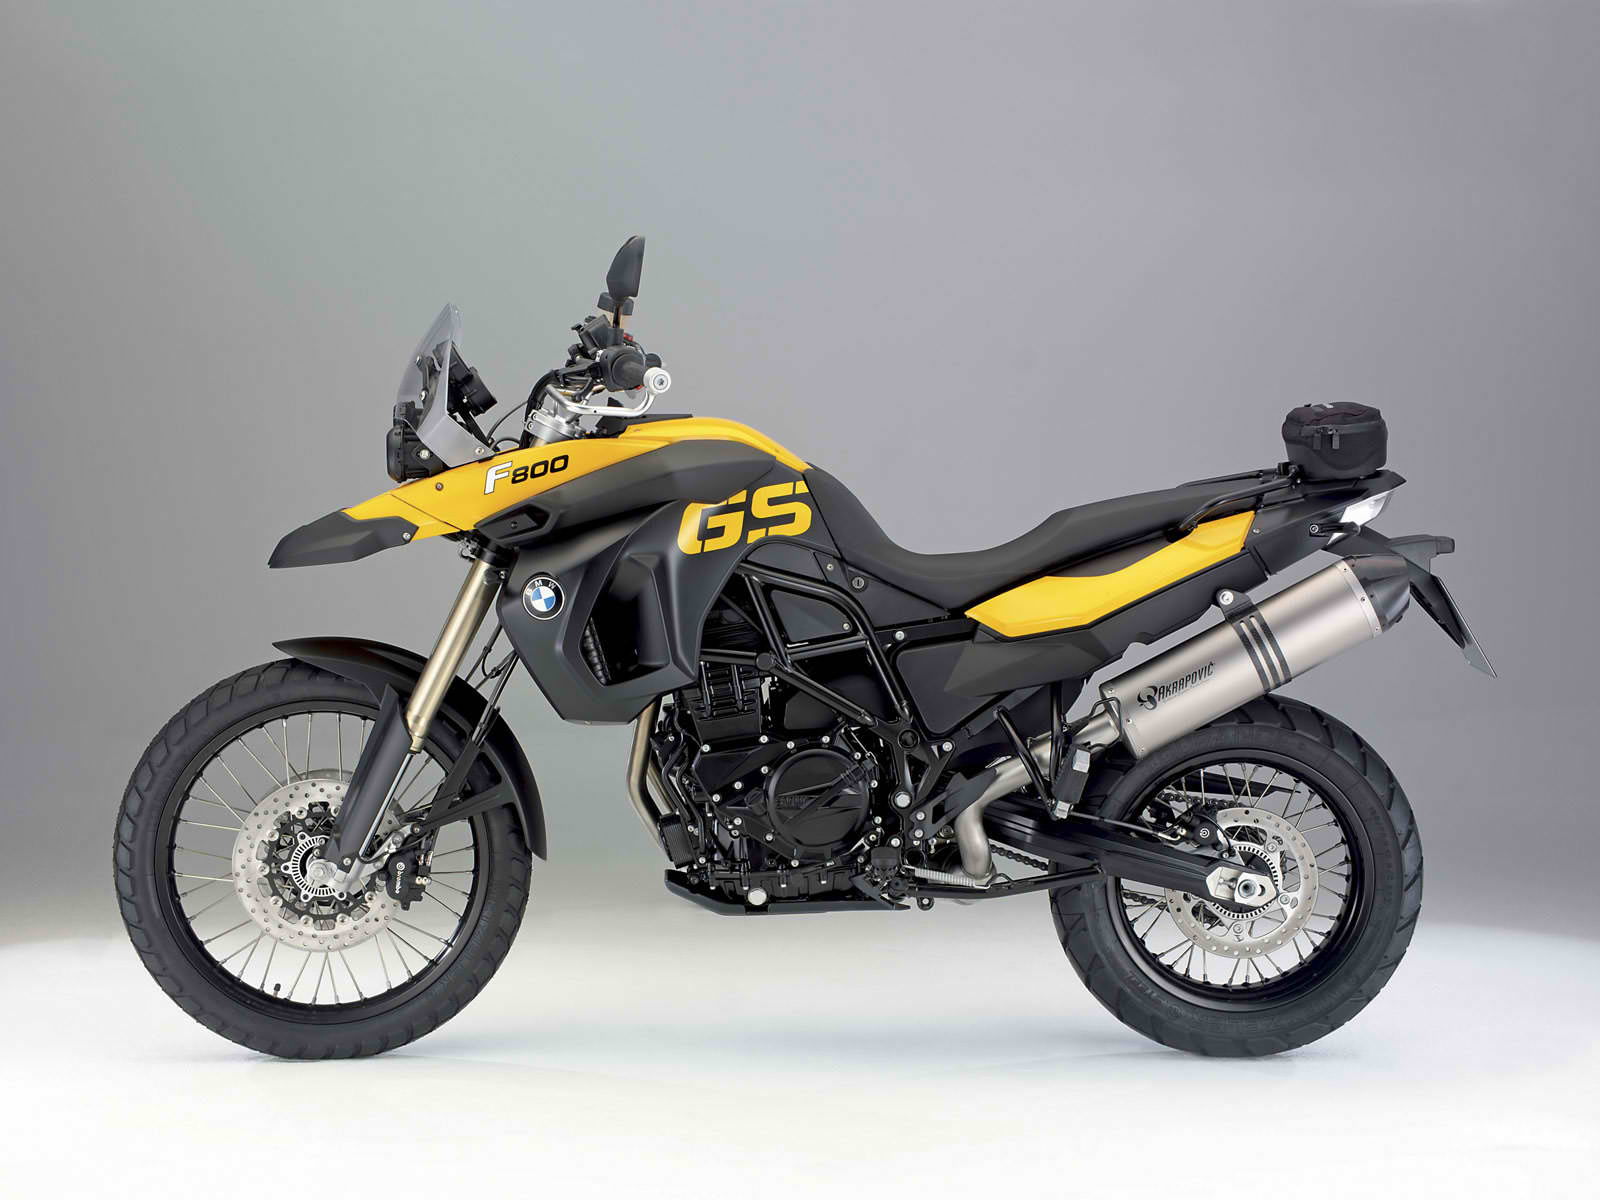 2010 new bmw f 800 gs revealed new motorcycles. Black Bedroom Furniture Sets. Home Design Ideas